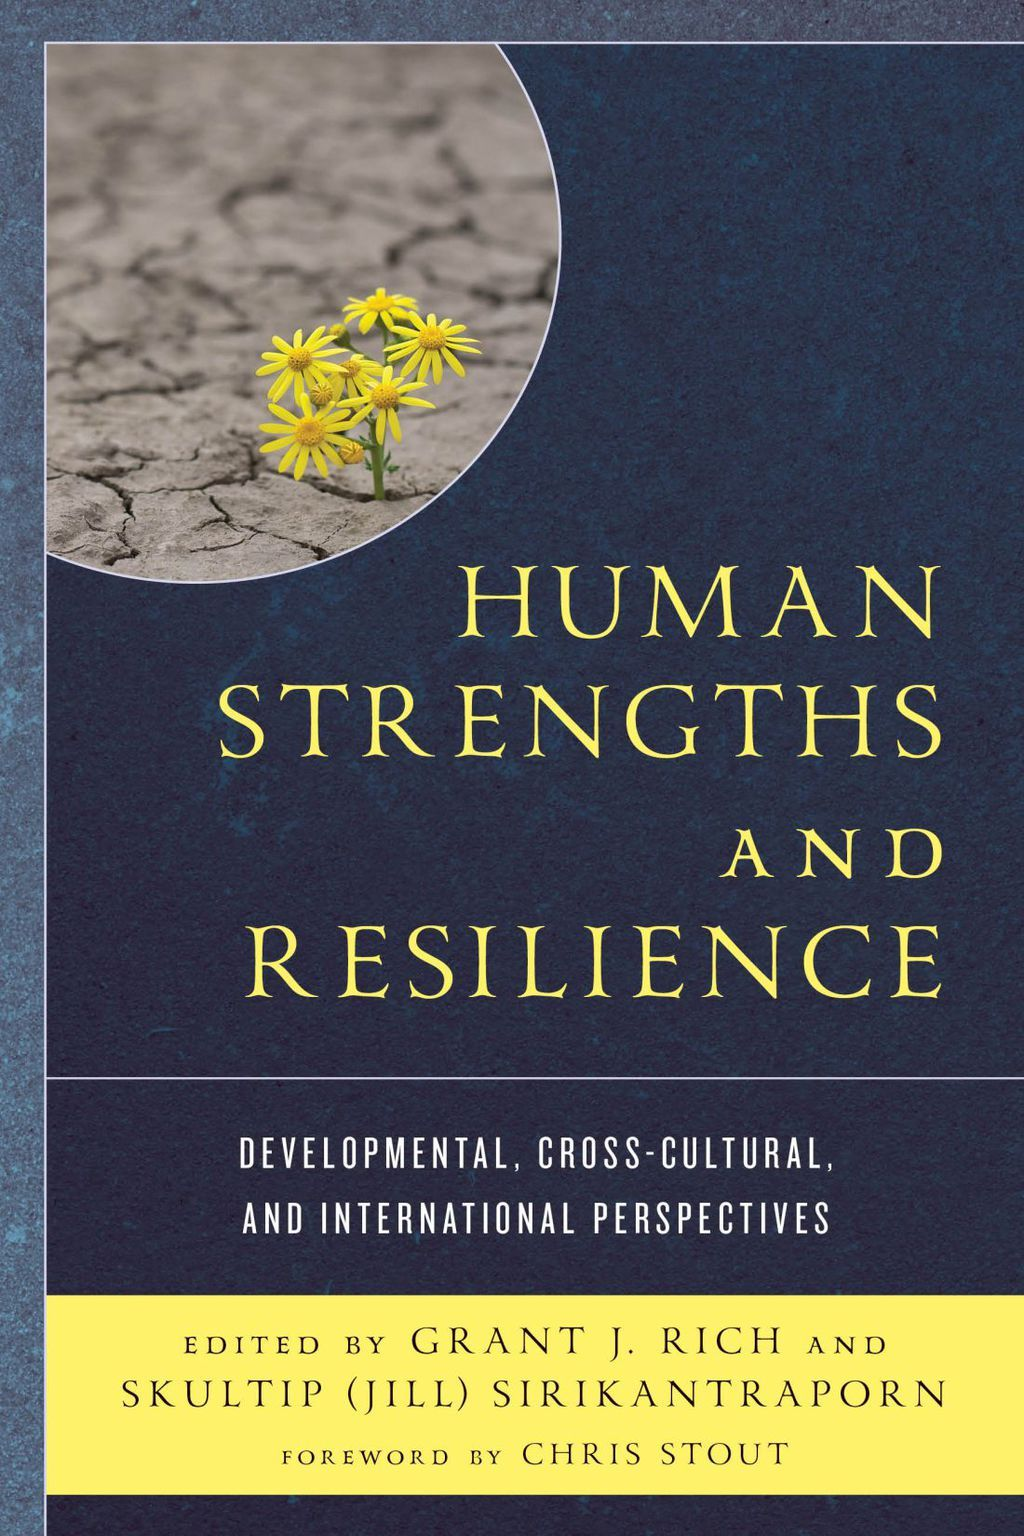 Human Strengths and Resilience (eBook) Free ebooks